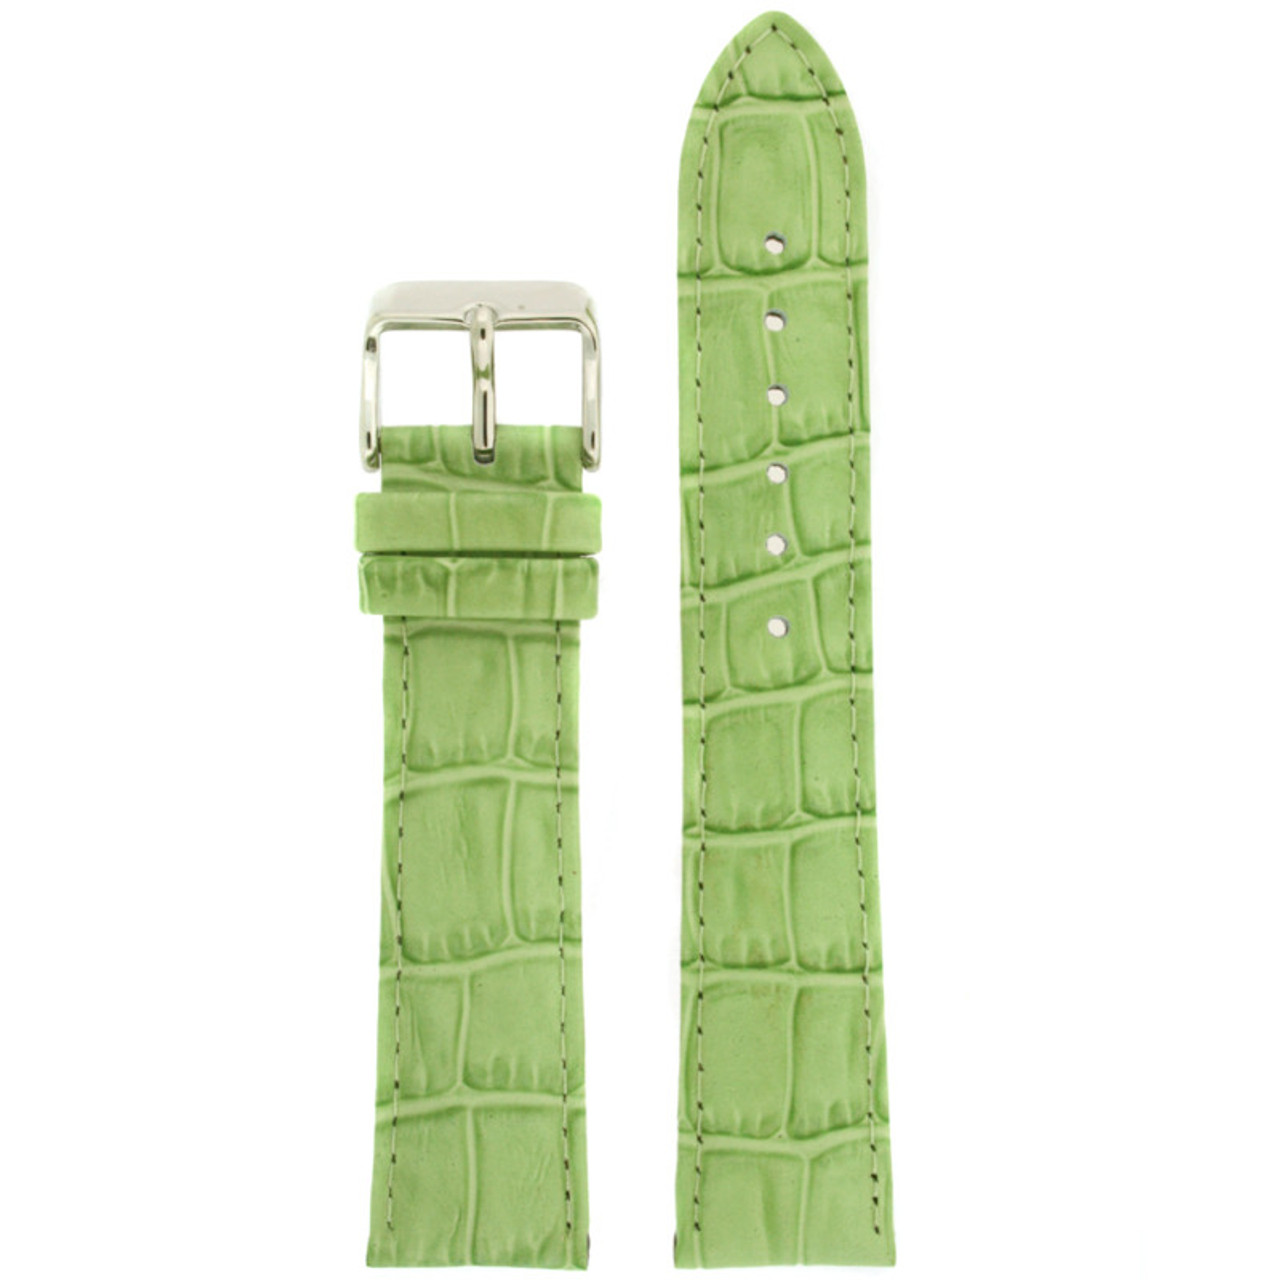 Leather Watch Band with Alligator Grain Print in Lime Green by Tech Swiss - Top View